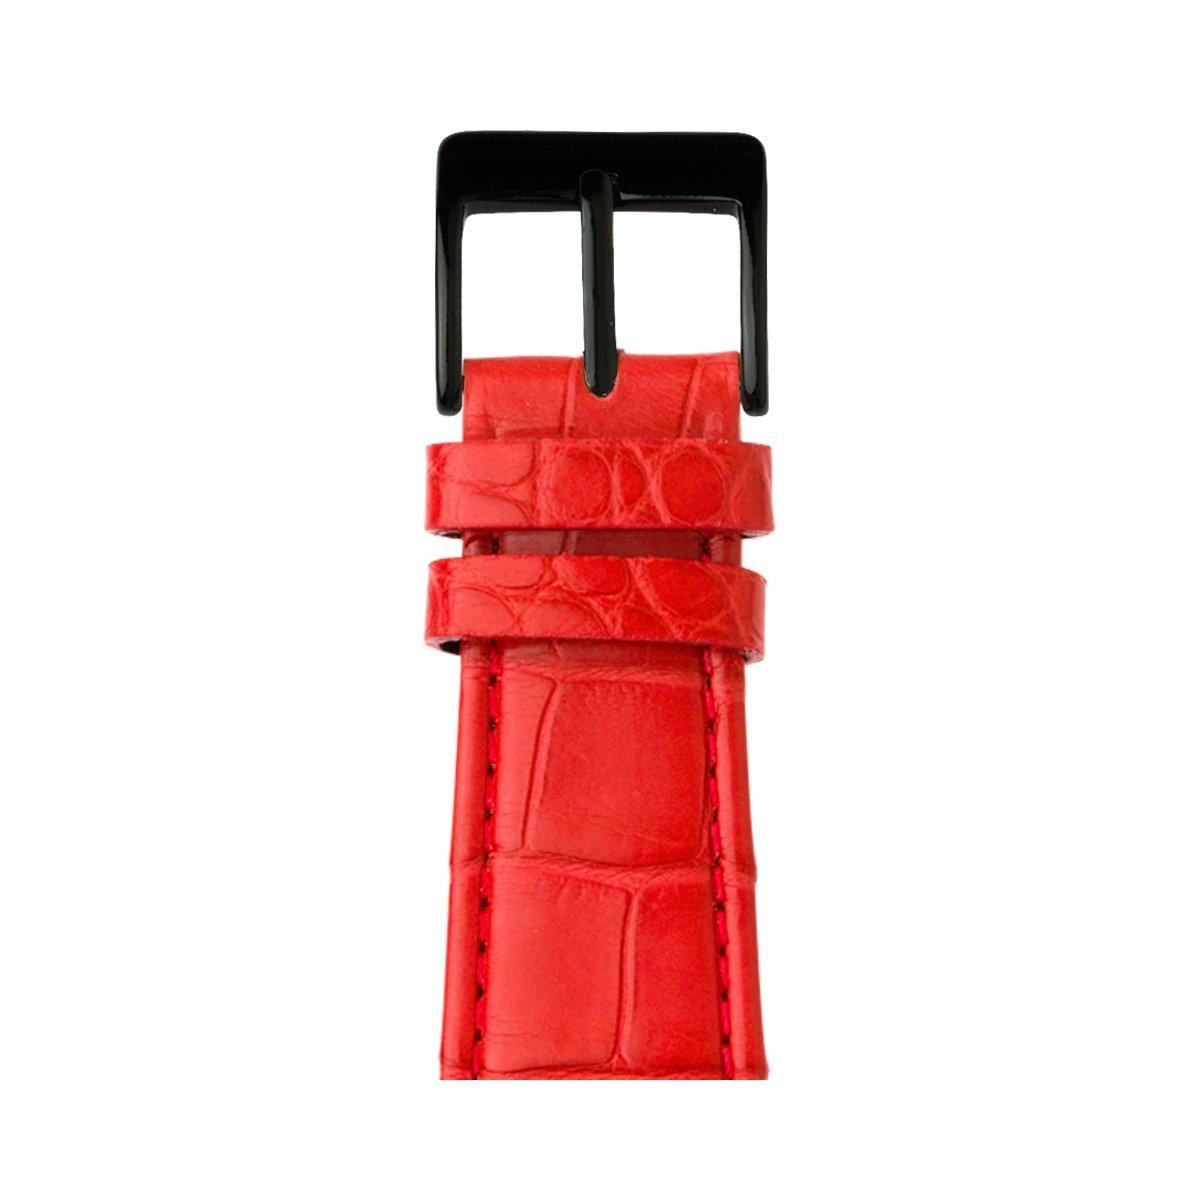 Roobaya | Premium Alligator Leather Apple Watch Band in Red | Includes Adapters matching the Color of the Apple Watch, Case Color:Space Black Stainless Steel, Size:38 mm